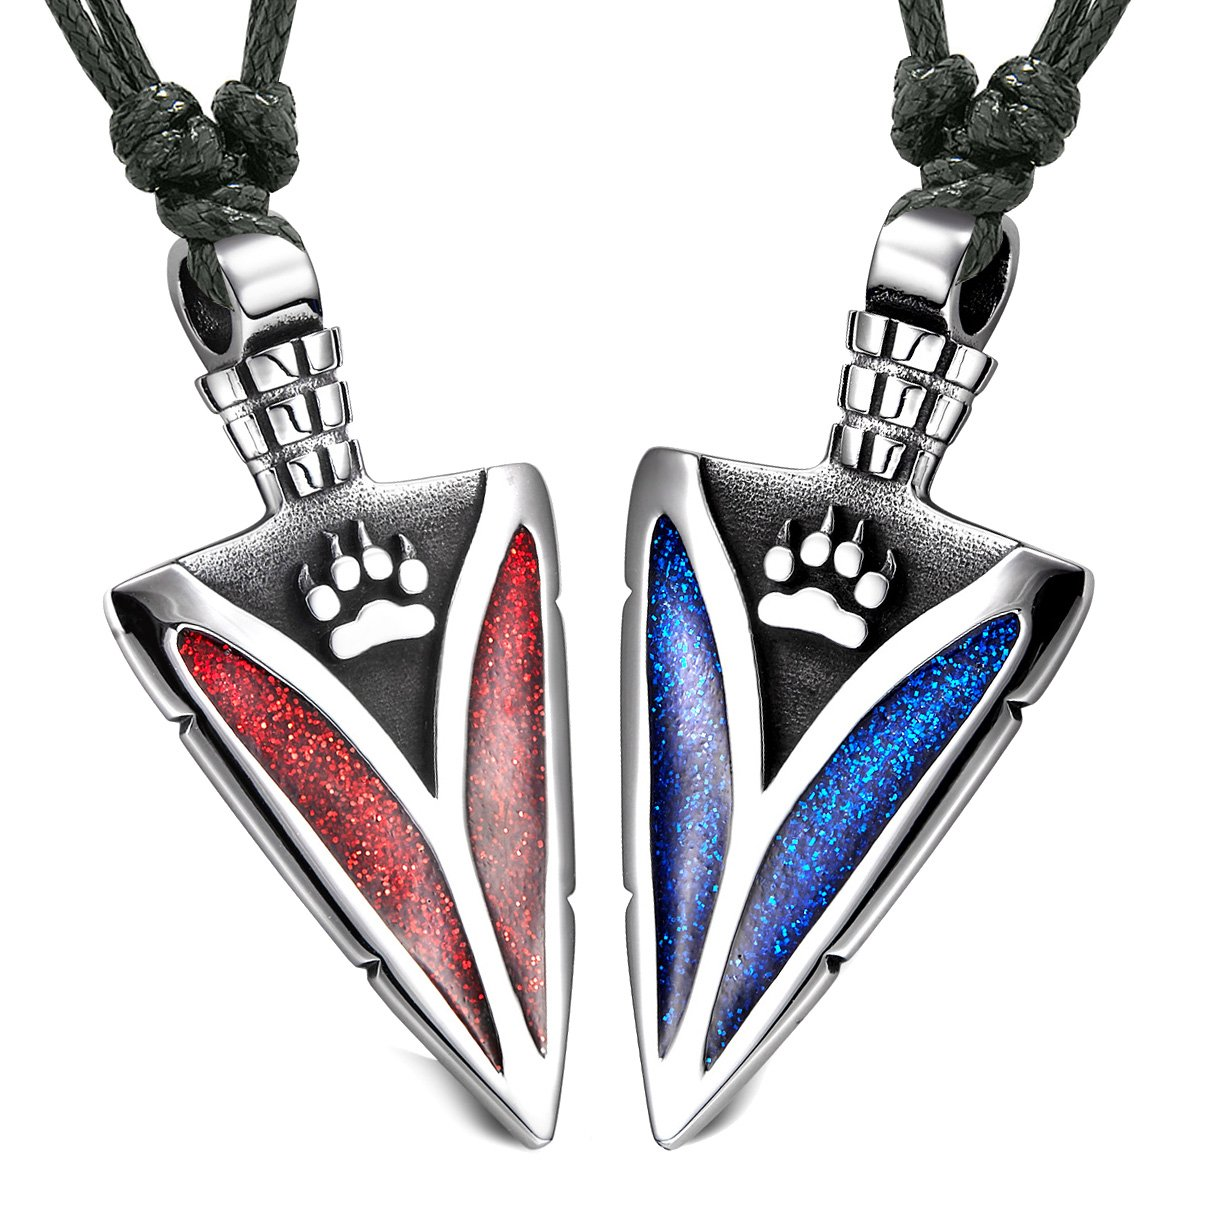 Arrowhead Wild Wolf Paw Love Couples or BFF Set Amulets Sparkling Royal Blue Red Adjustable Necklaces